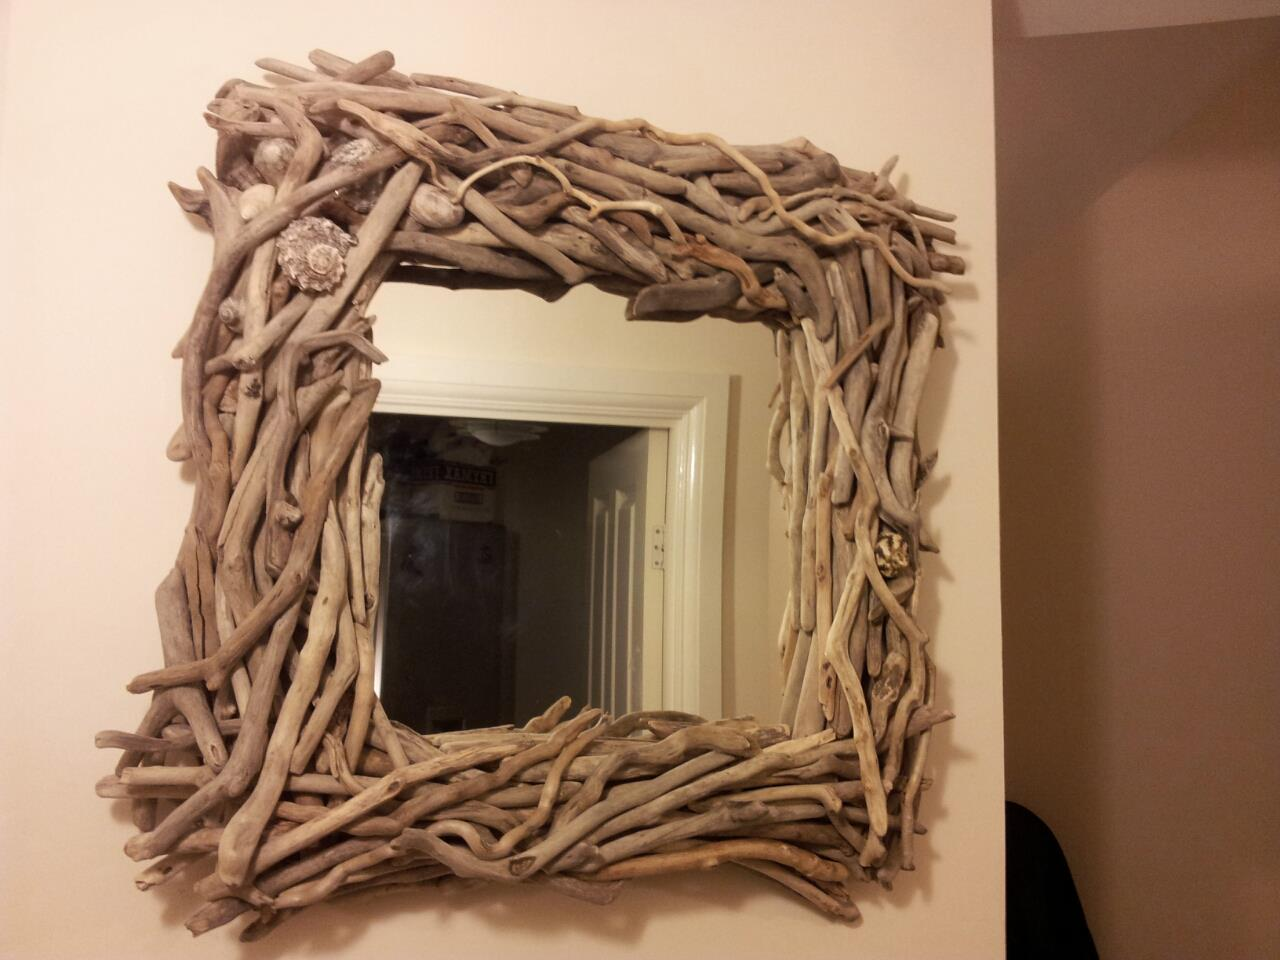 Square Driftwood Bathroom Mirror with Shells